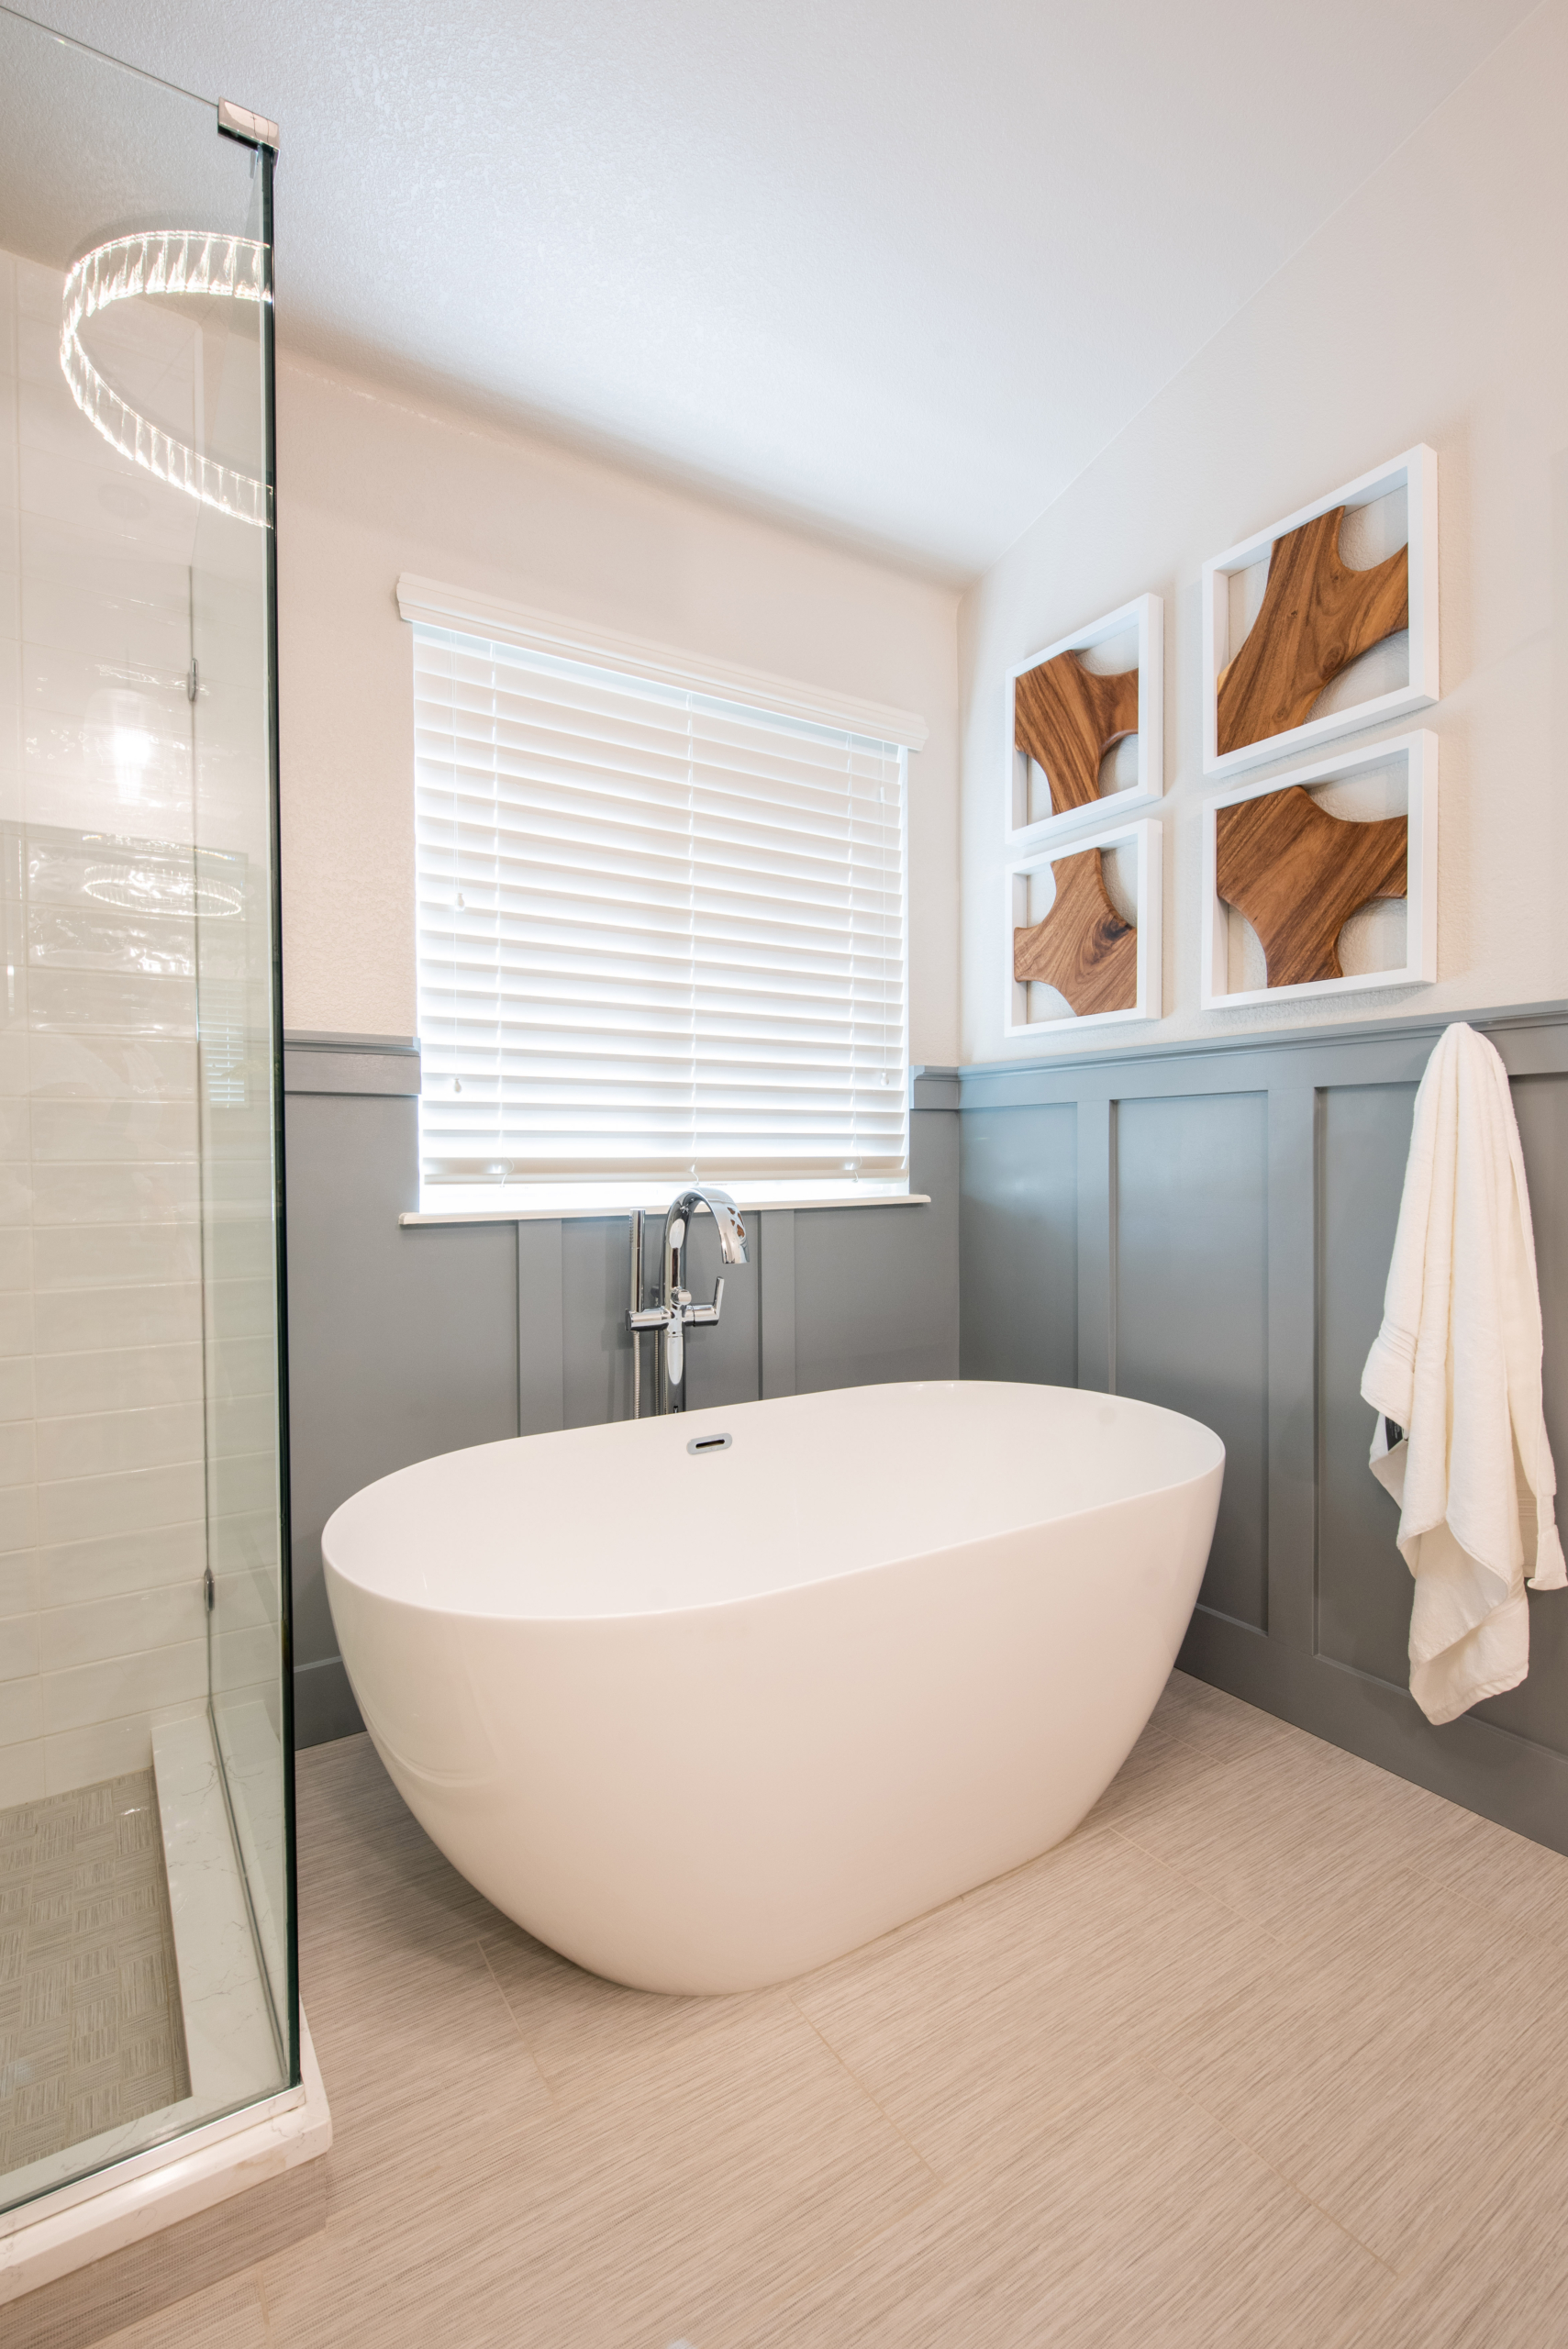 master bathroom with free standing tub, light blue paneling, wood artwork on walls